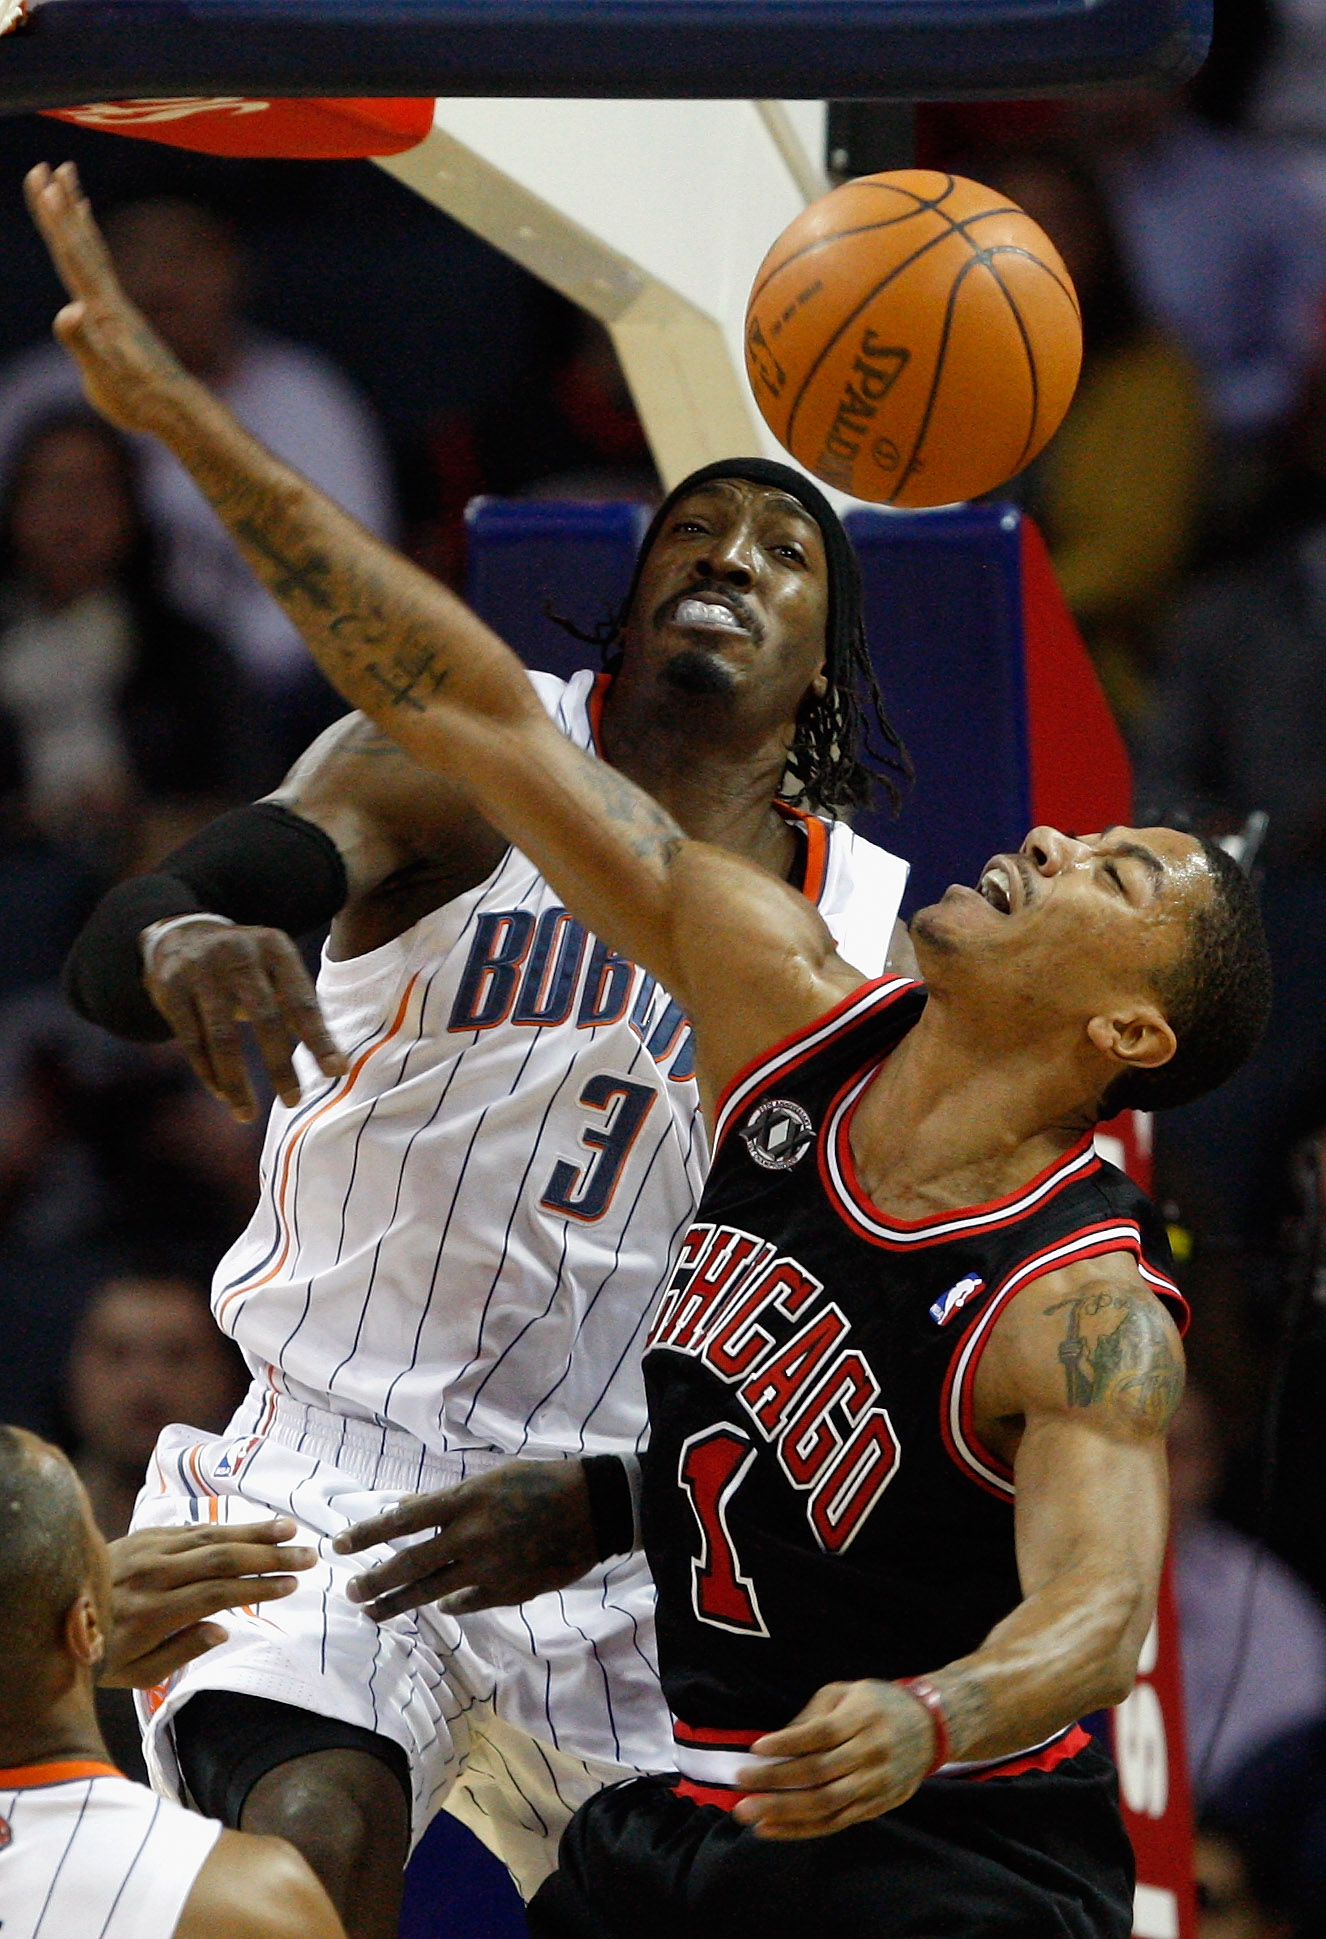 CHARLOTTE, NC - JANUARY 12:  Derrick Rose #1 of the Chicago Bulls has his shot blocked by Gerald Wallace #3 of the Charlotte Bobcats during their game at Time Warner Cable Arena on January 12, 2011 in Charlotte, North Carolina. NOTE TO USER: User expressl